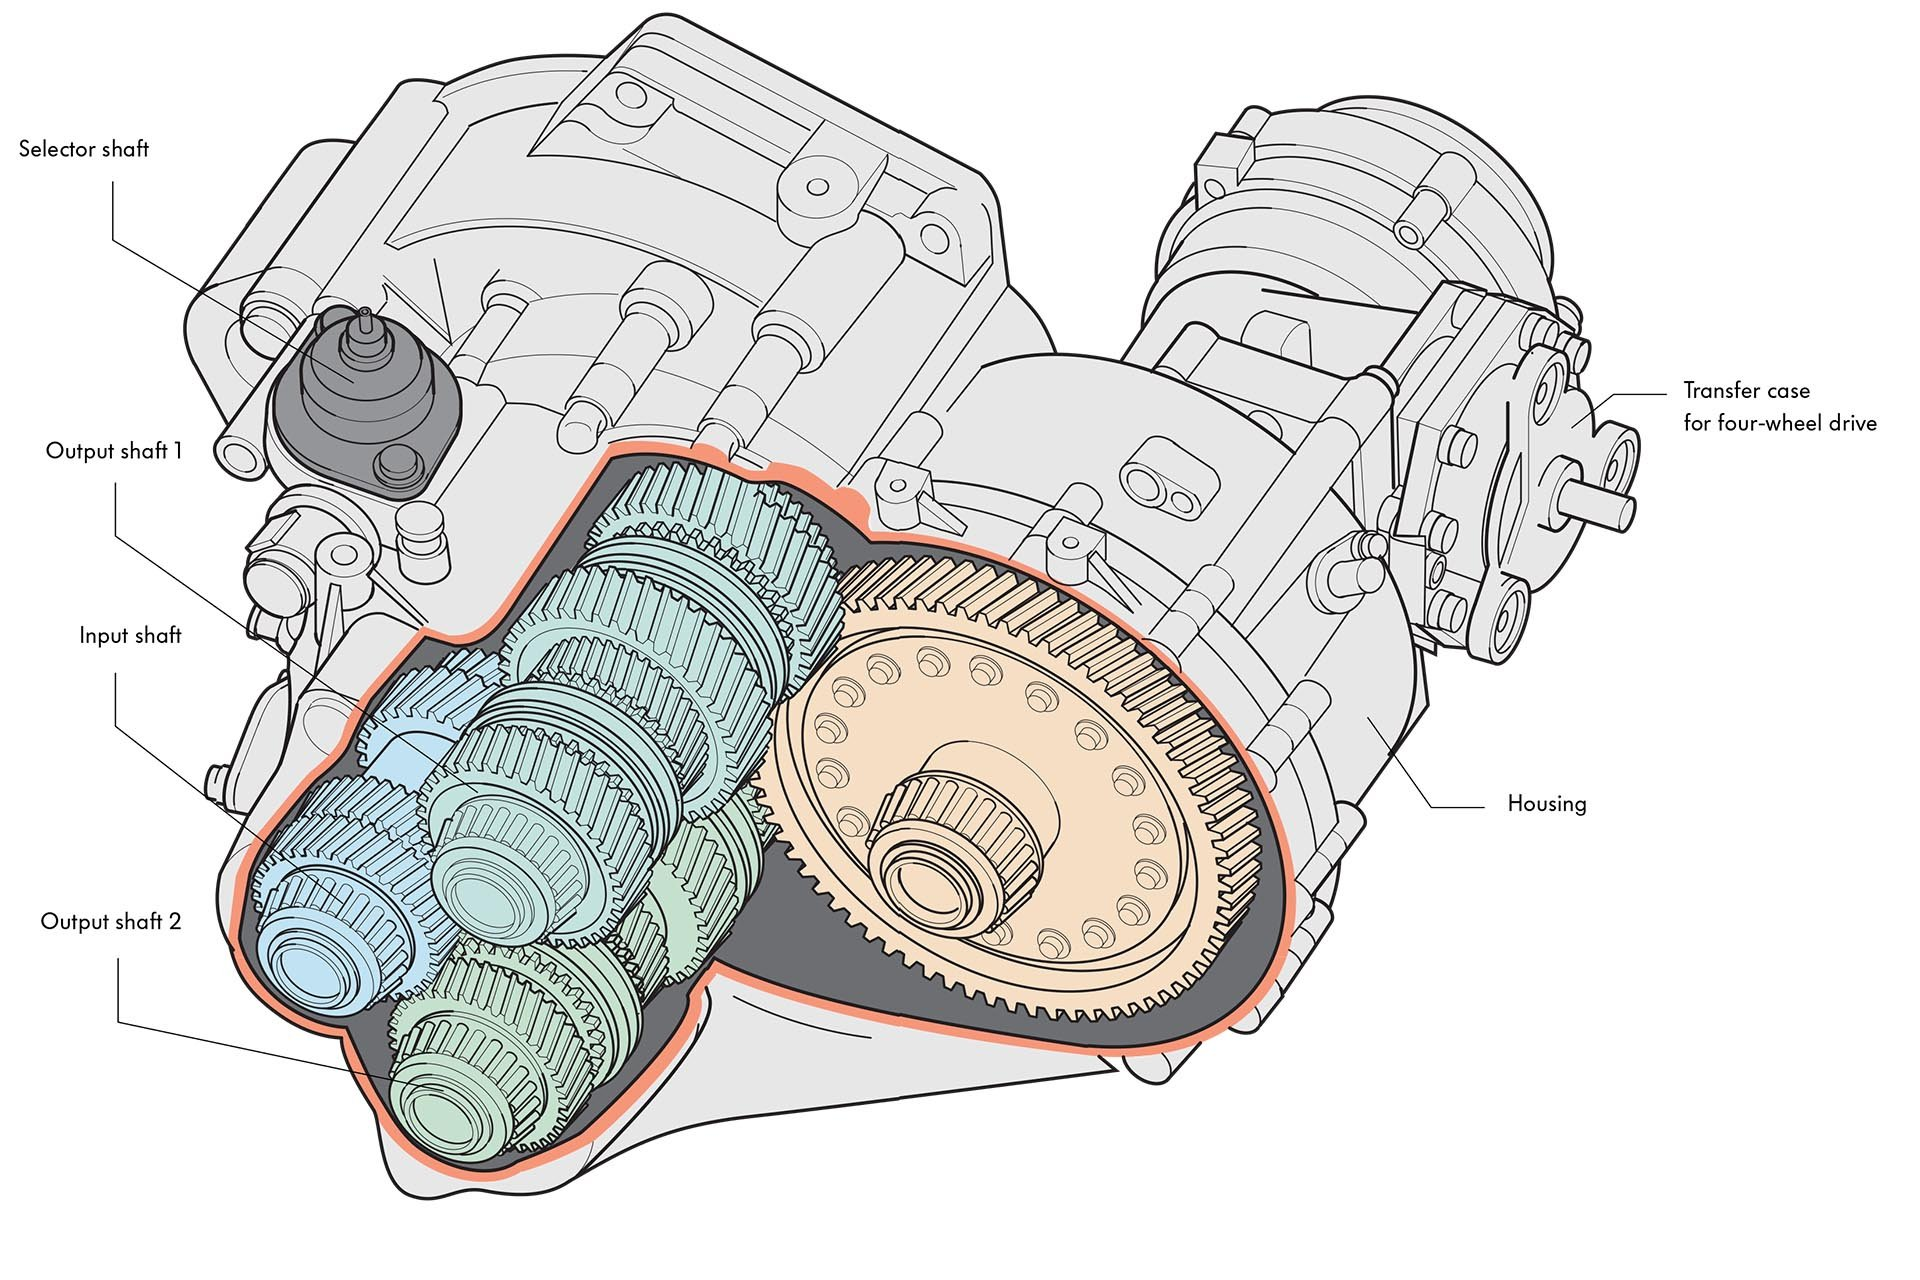 03_VW 02M 6-speed transmission internal technical drawing